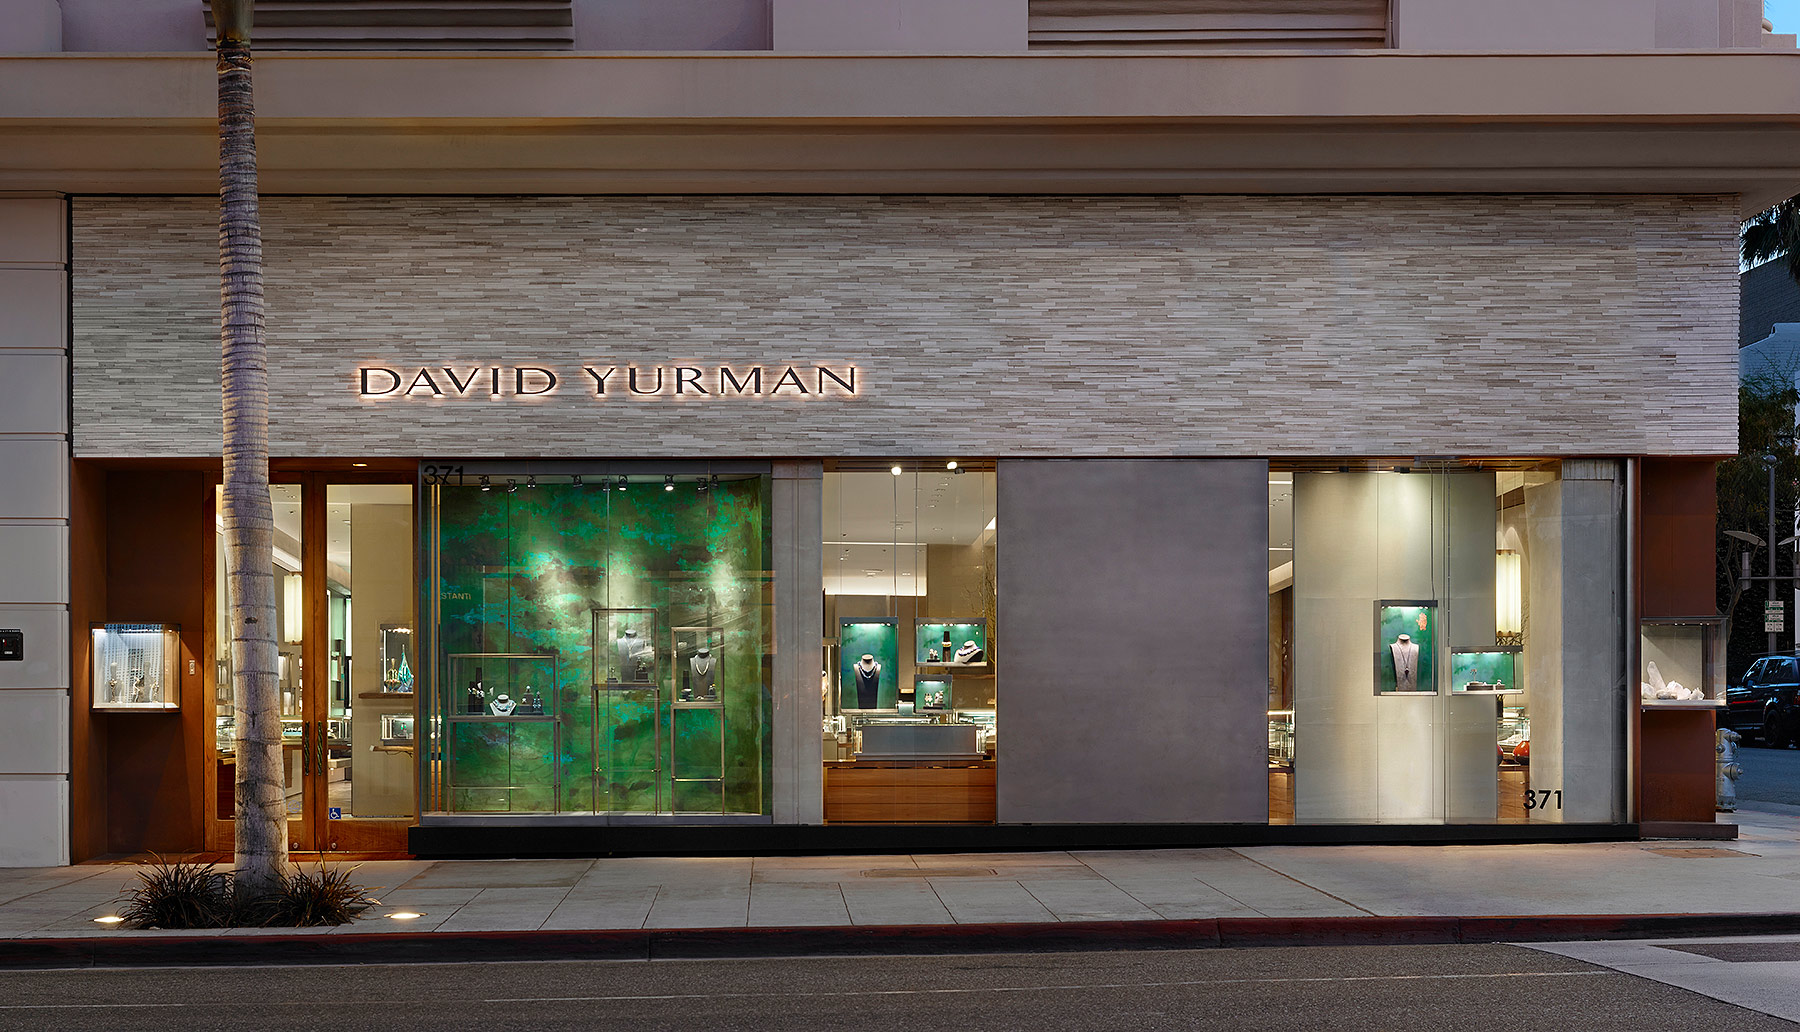 David Yurman Rodeo Drive Beverly Hills, CA